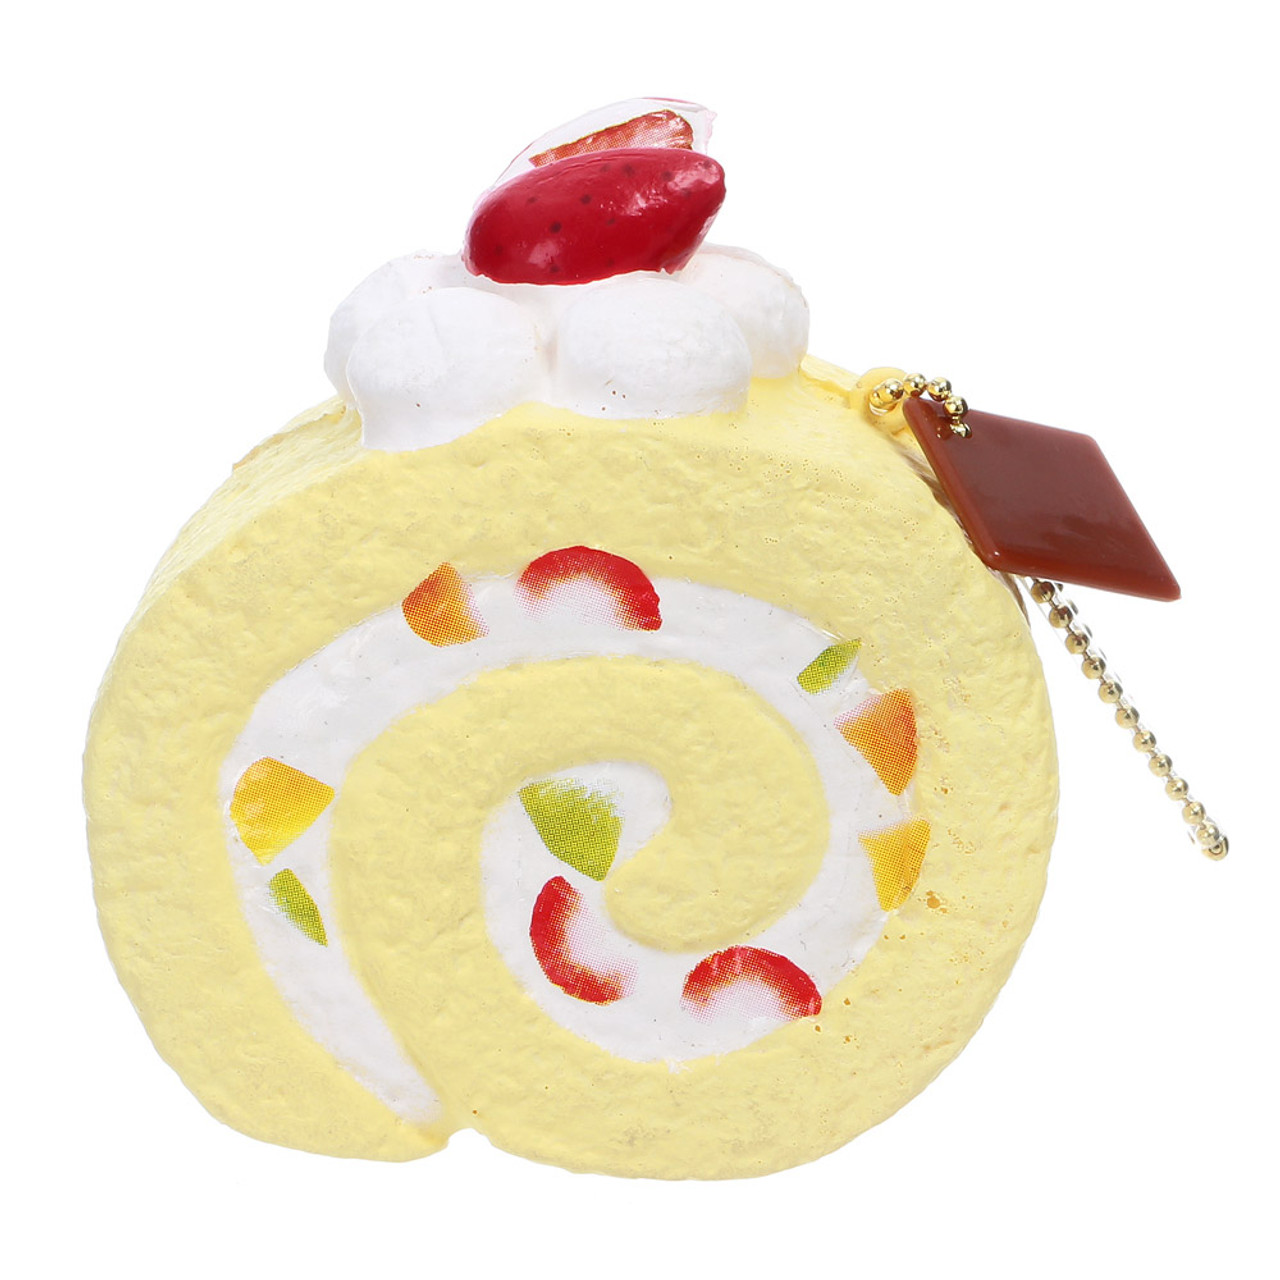 Cafe De N Scented Fruit Chiffon Roll Cake Squishy Toys Charms Front View